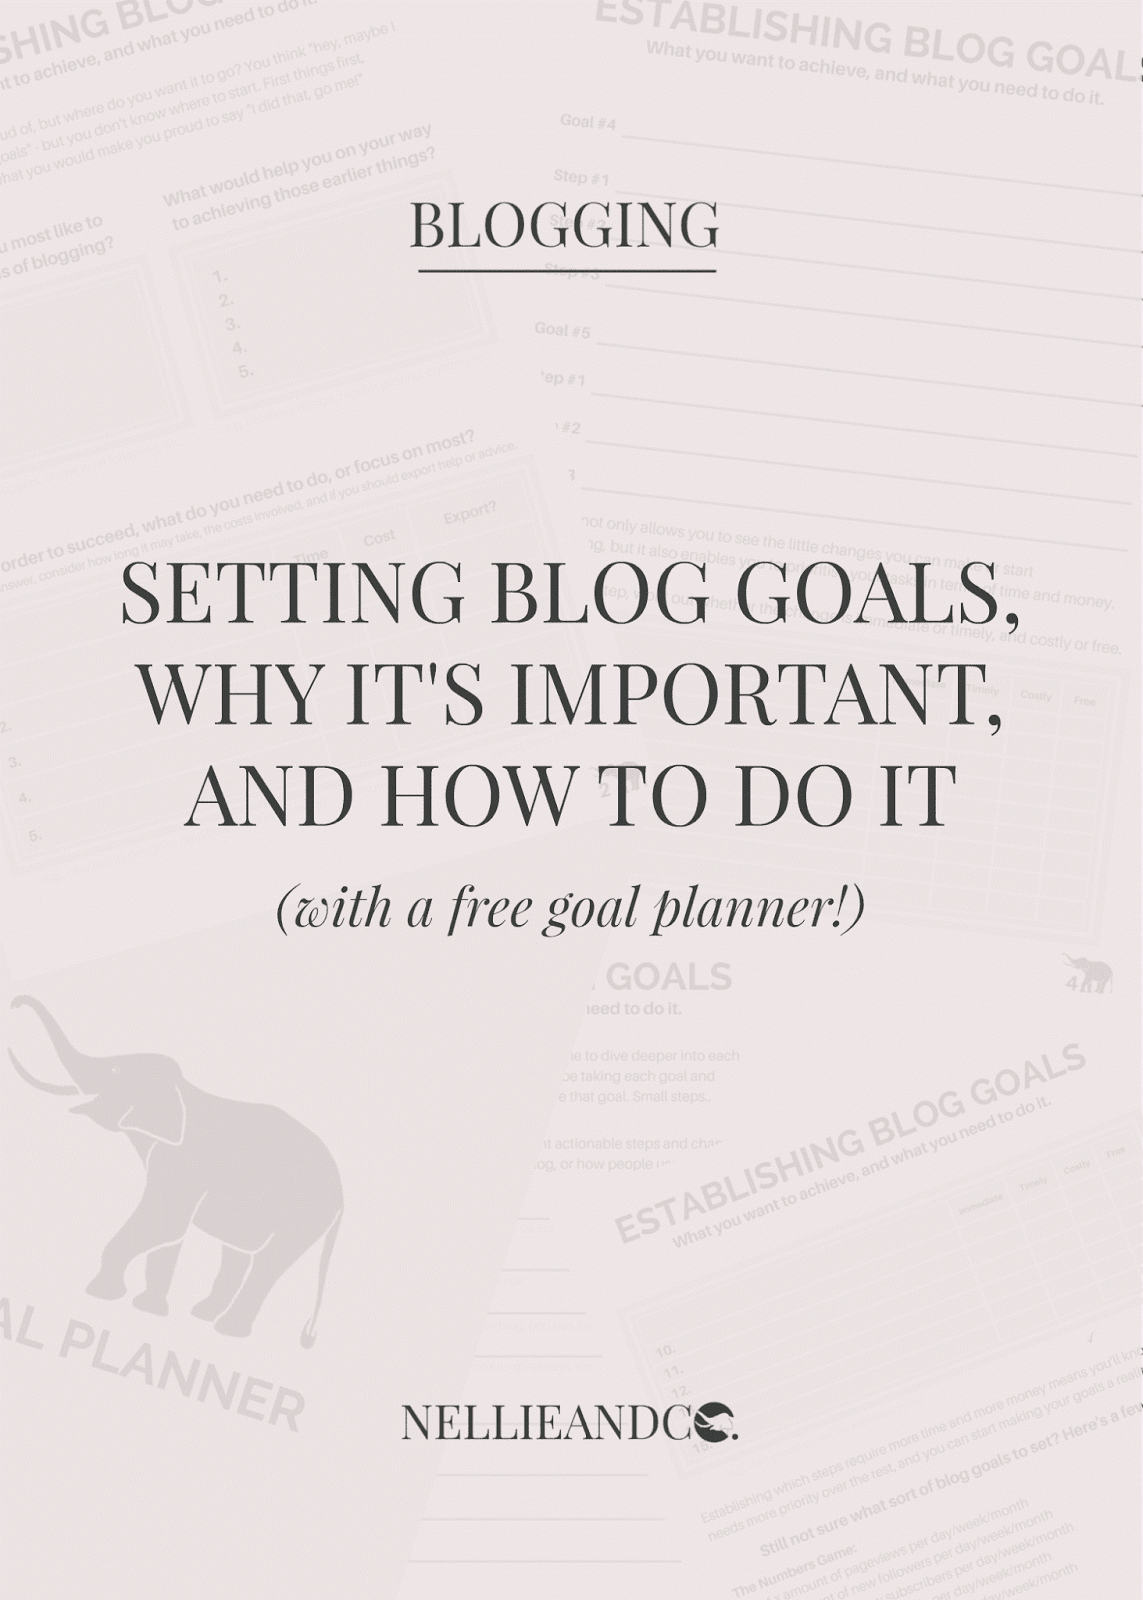 Blog goals are important and help you establish what you want to change and achieve in terms of your blogging journey. Get an idea of what you want with my free goal planner!